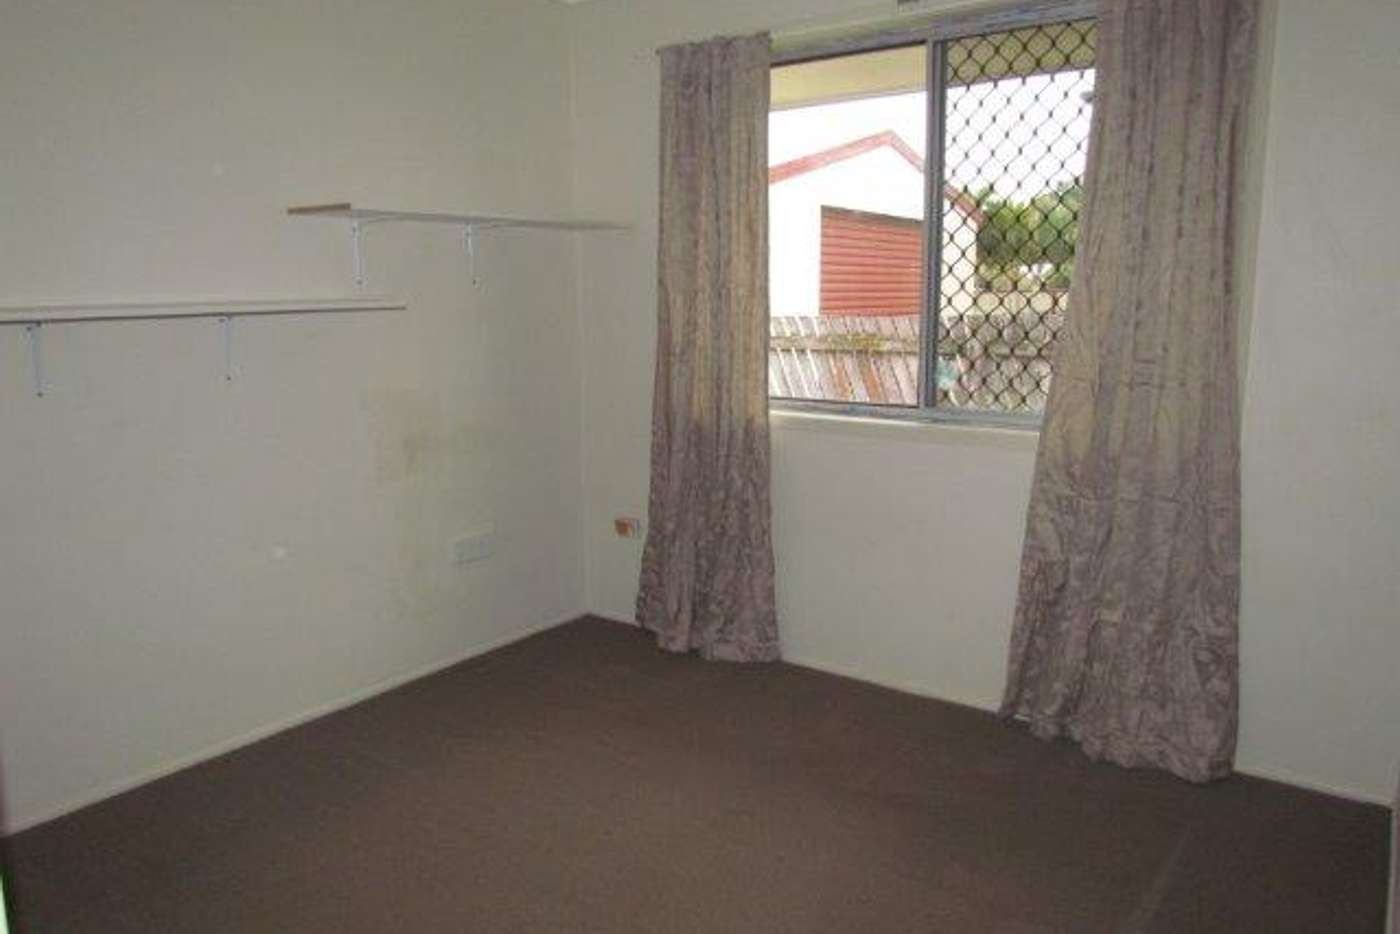 Sixth view of Homely house listing, 11 Kerwalli Street, Deception Bay QLD 4508